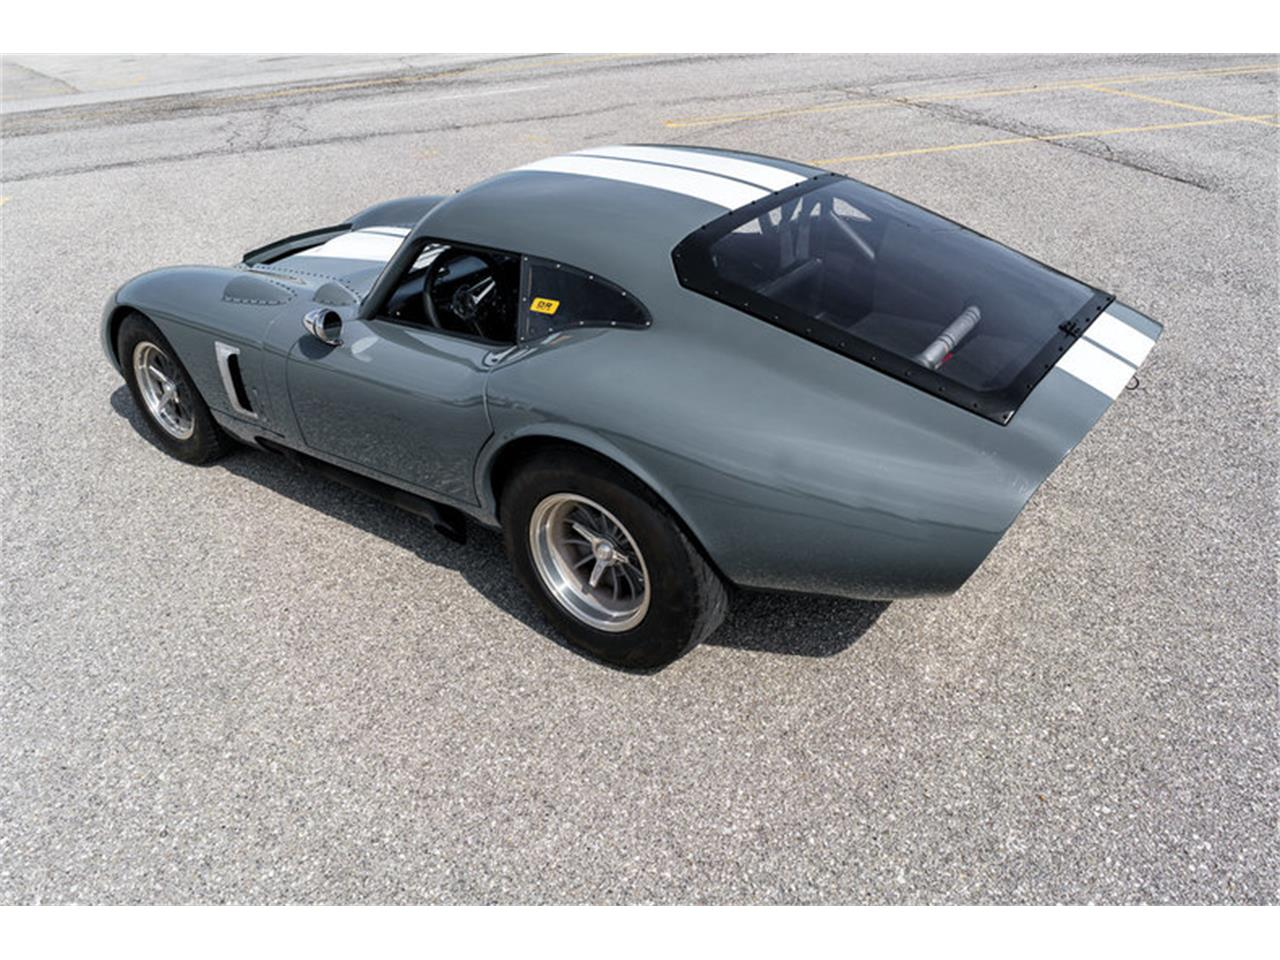 Large Picture of '64 Shelby Daytona located in St. Charles Missouri - $79,995.00 - H75H